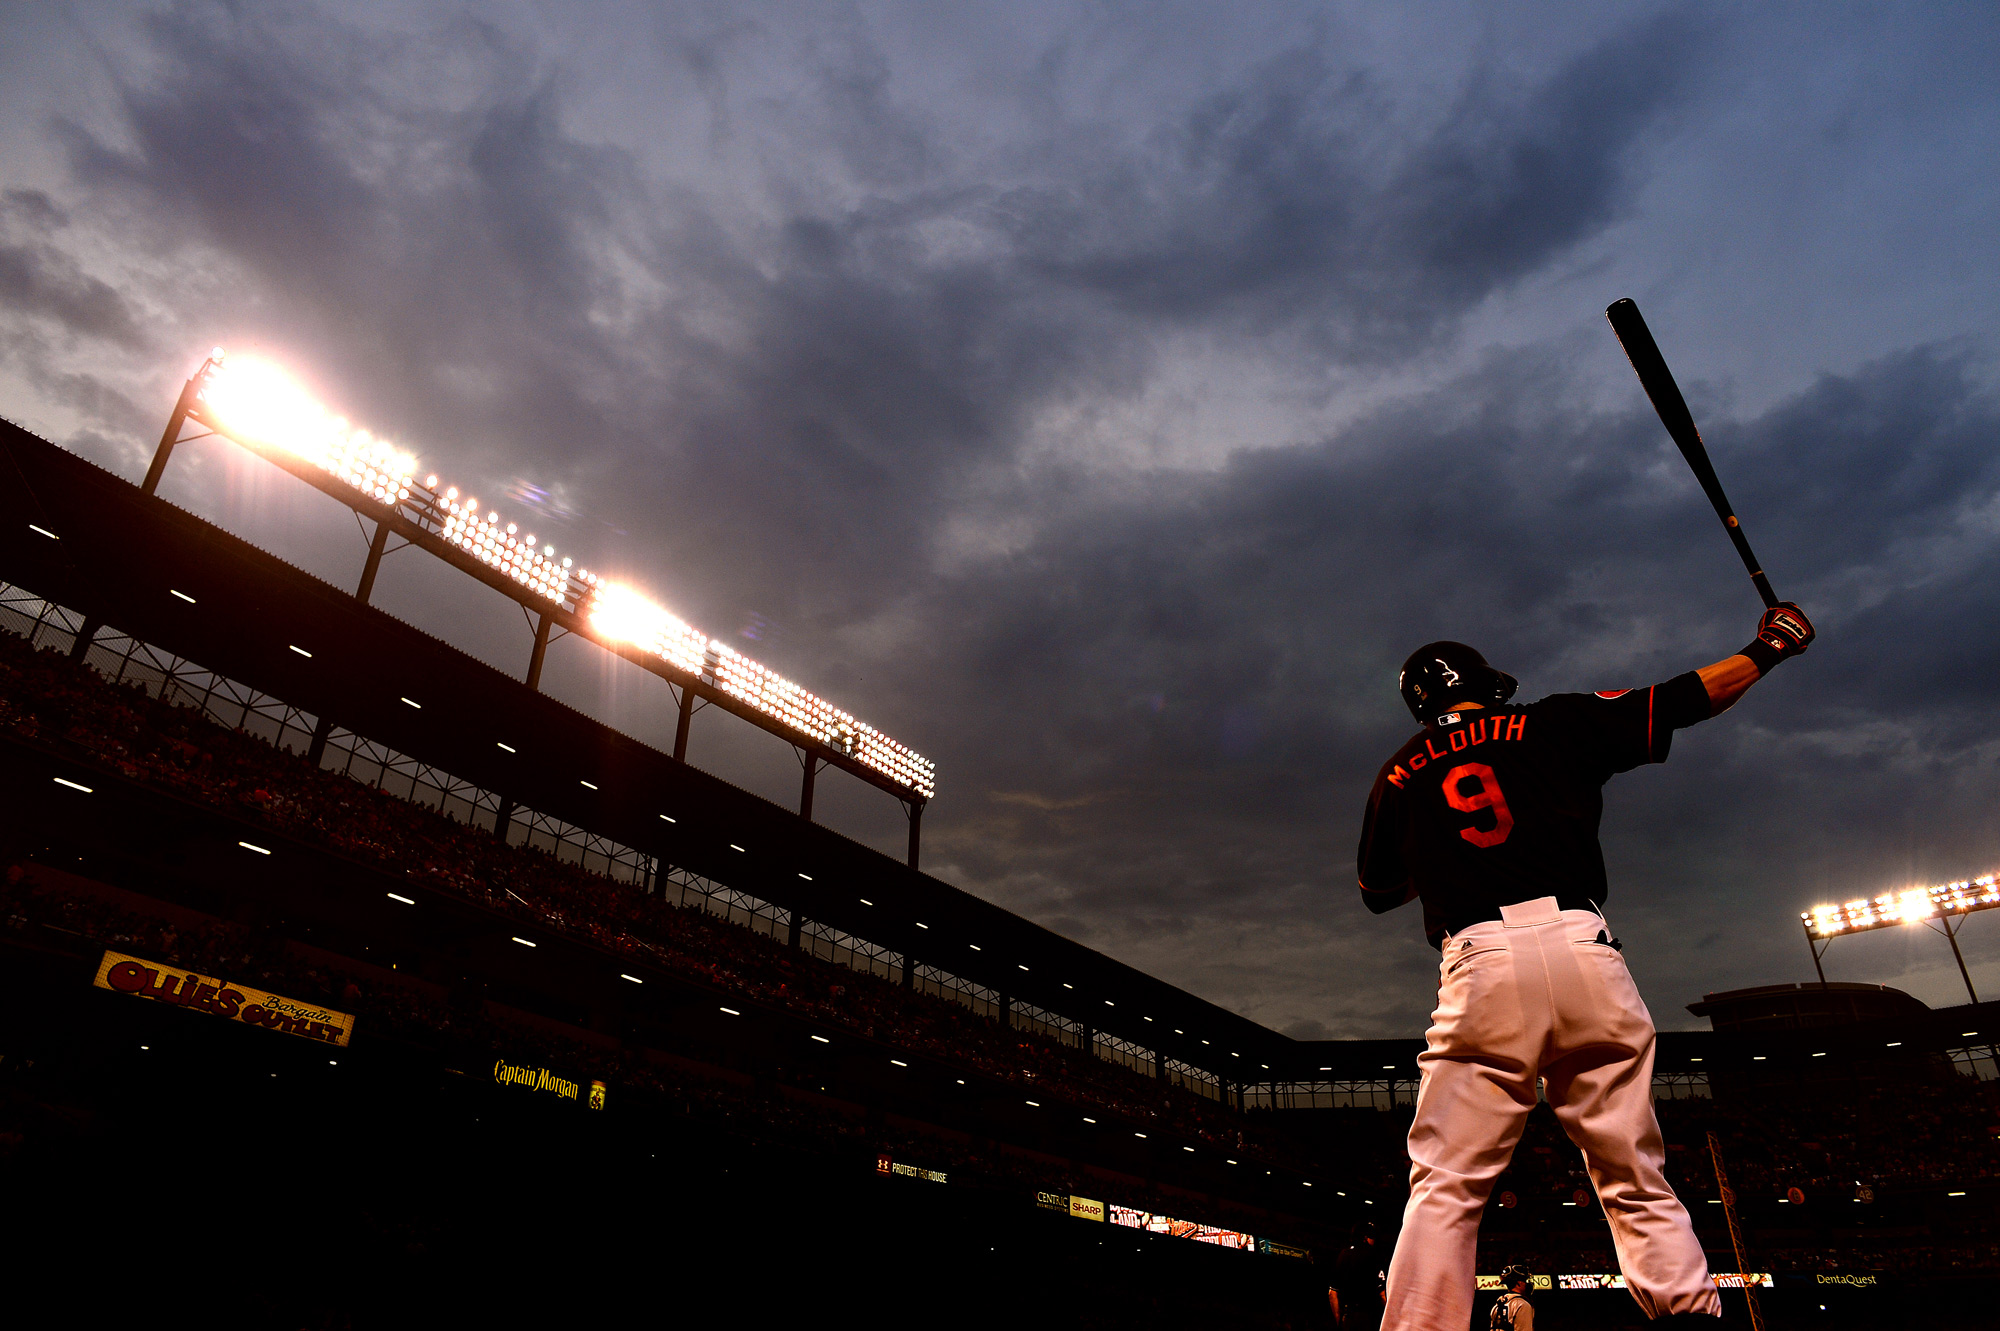 Baltimore Orioles left fielder Nate McLouth prepares for an at bat during a home game against the New York Yankees on June 30, 2013 at Oriole Park at Camden Yards in Baltimore, Md.